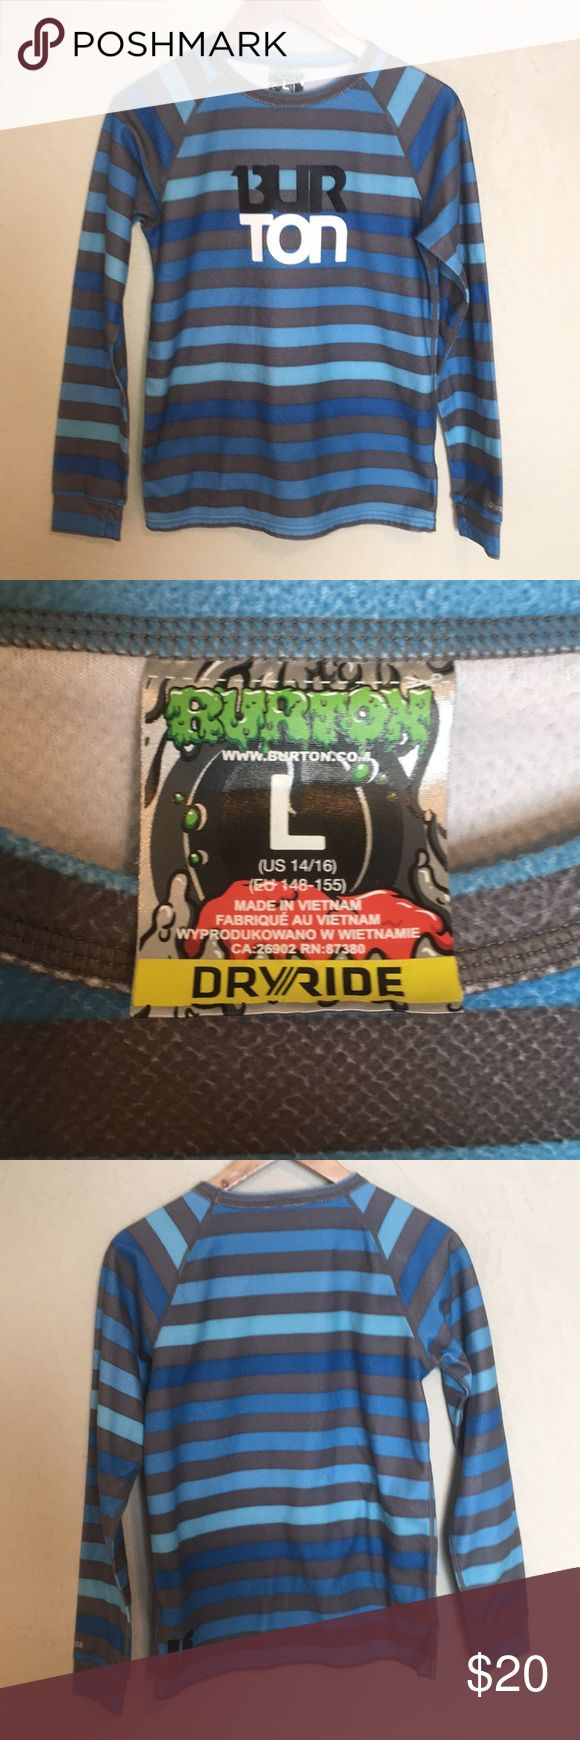 Button snowboarding long sleeve top Burton snowboarding dryride long sleeve shirt— gently used condition. Burton Shirts & Tops